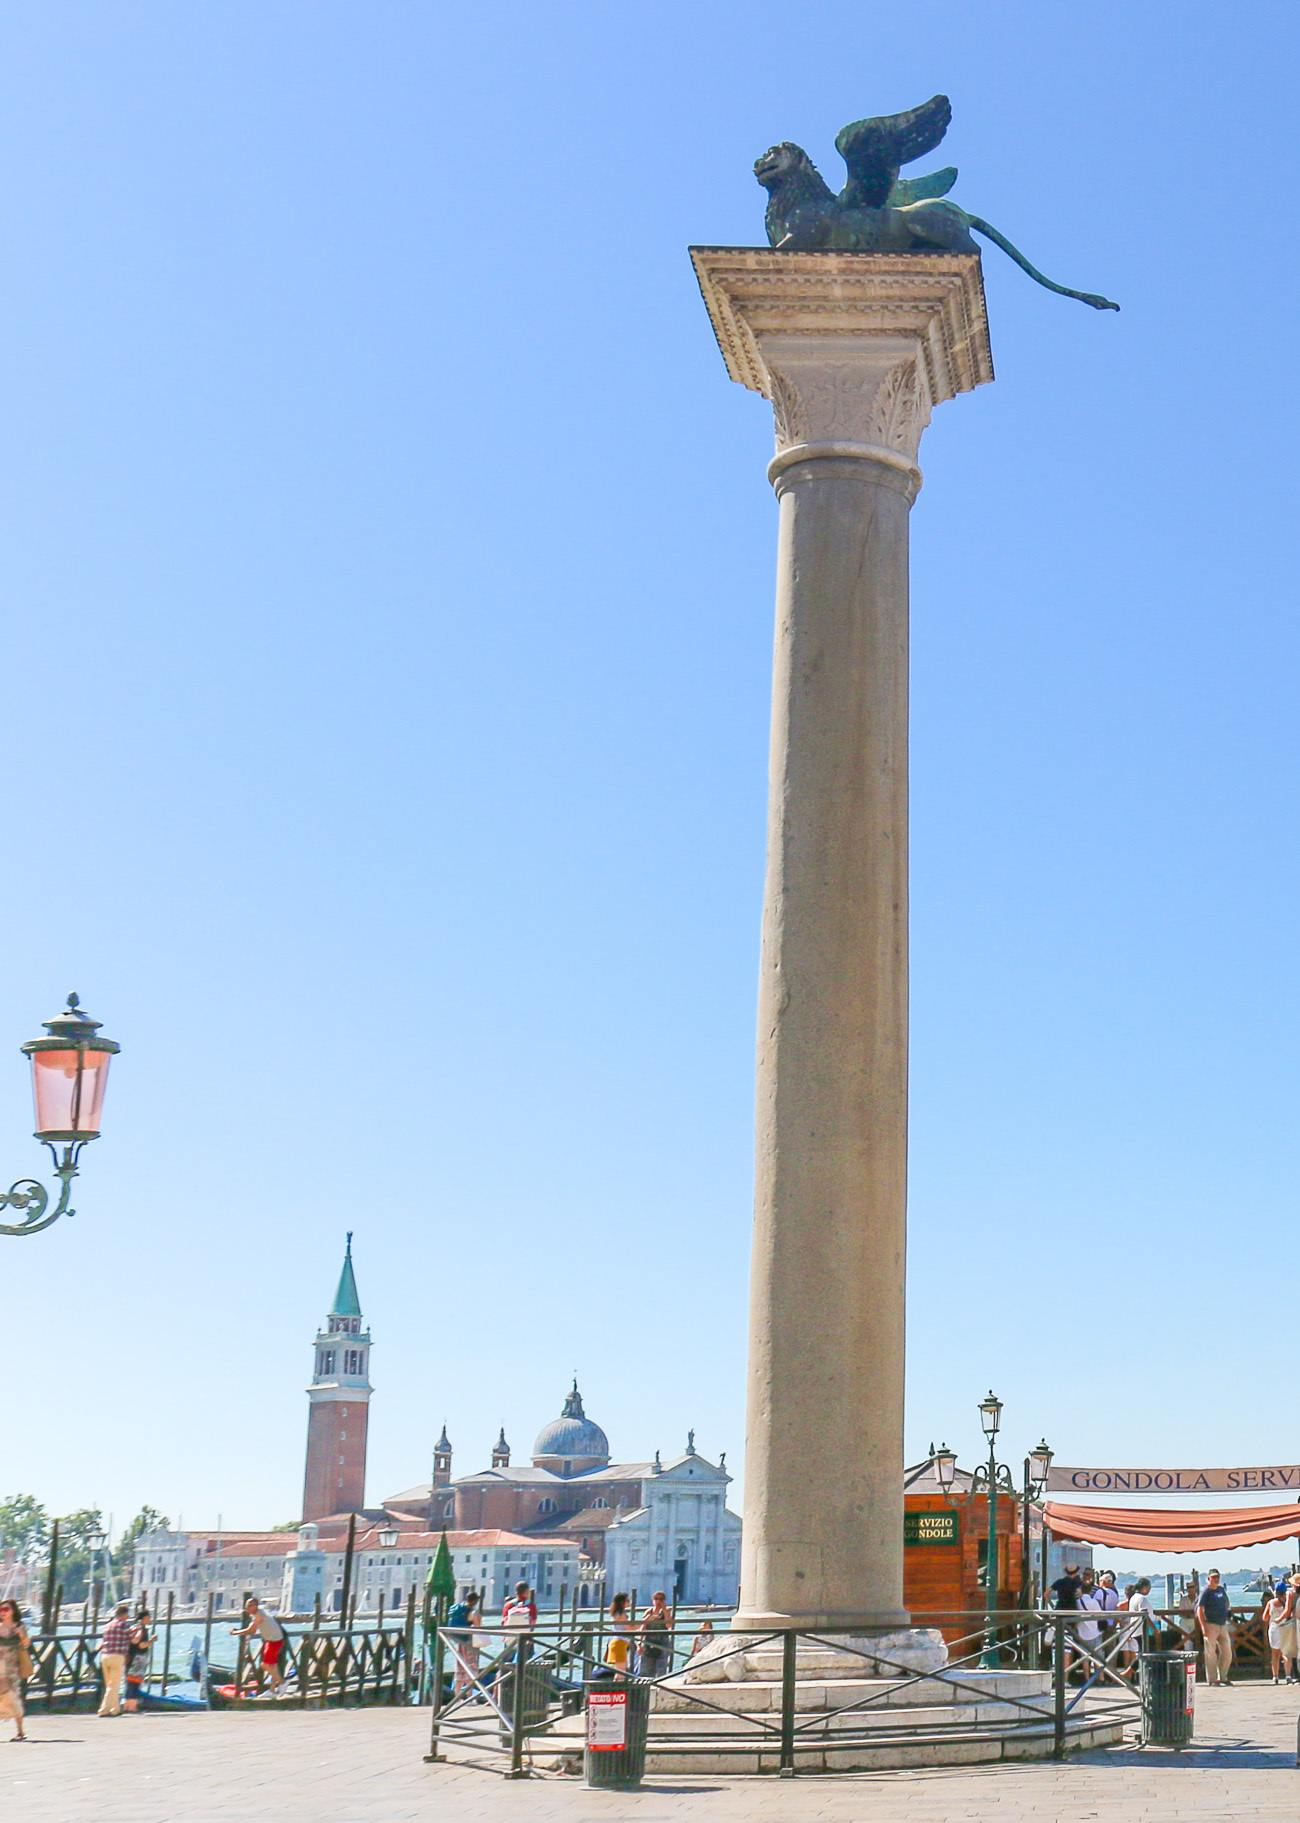 St. Mark's Lion at Piazzetta San Marco in Venice, Italy